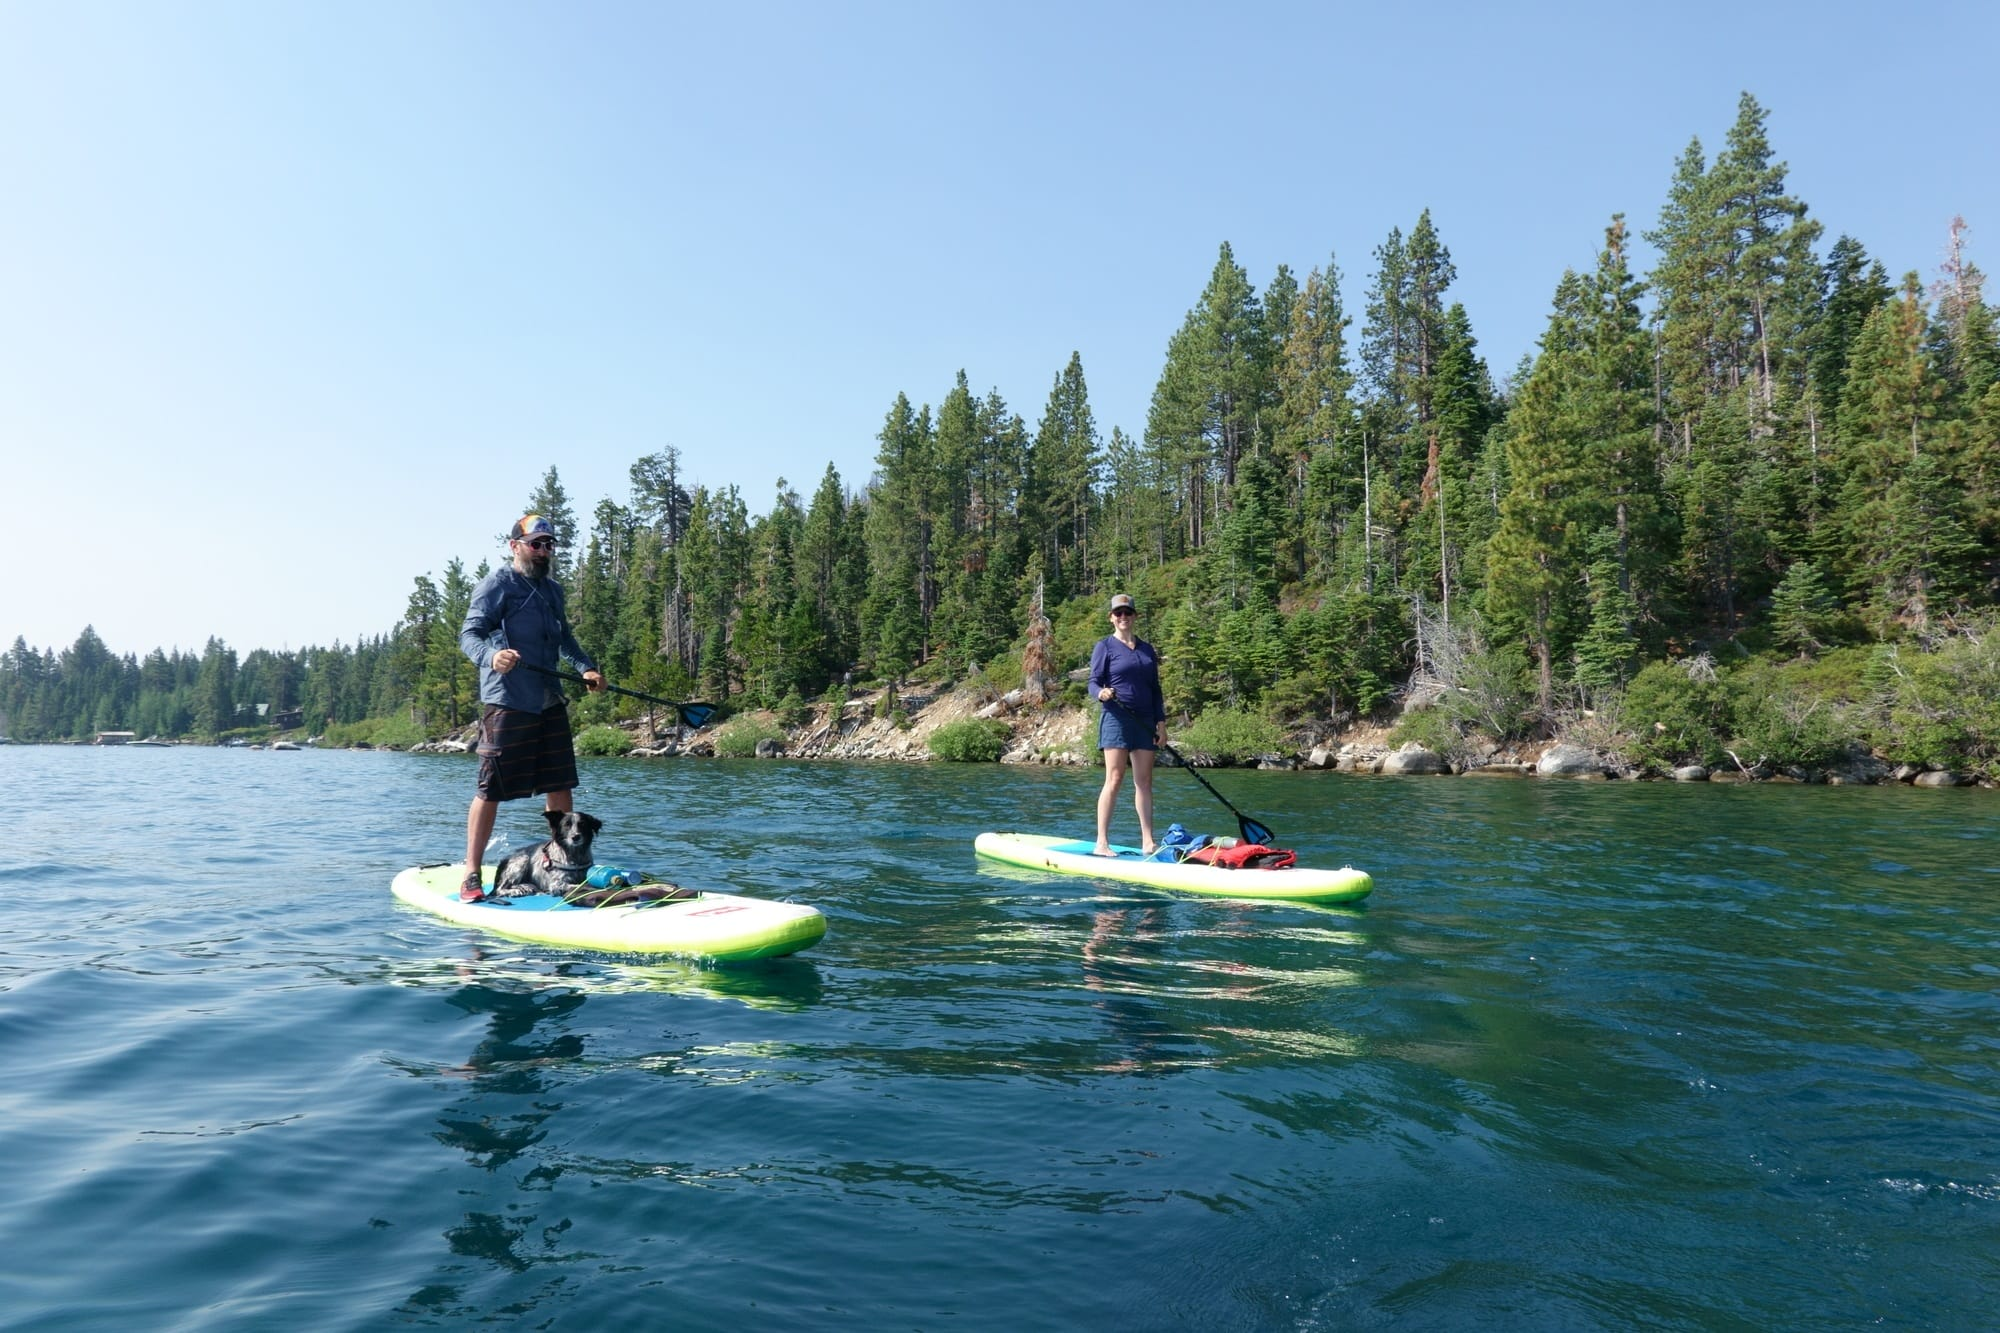 Stand-up Paddle Boarding to Emerald Bay // Planning an adventure-packed vacation to Lake Tahoe? Here are 12 of the best things to do around Lake Tahoe for the outdoor enthusiast.